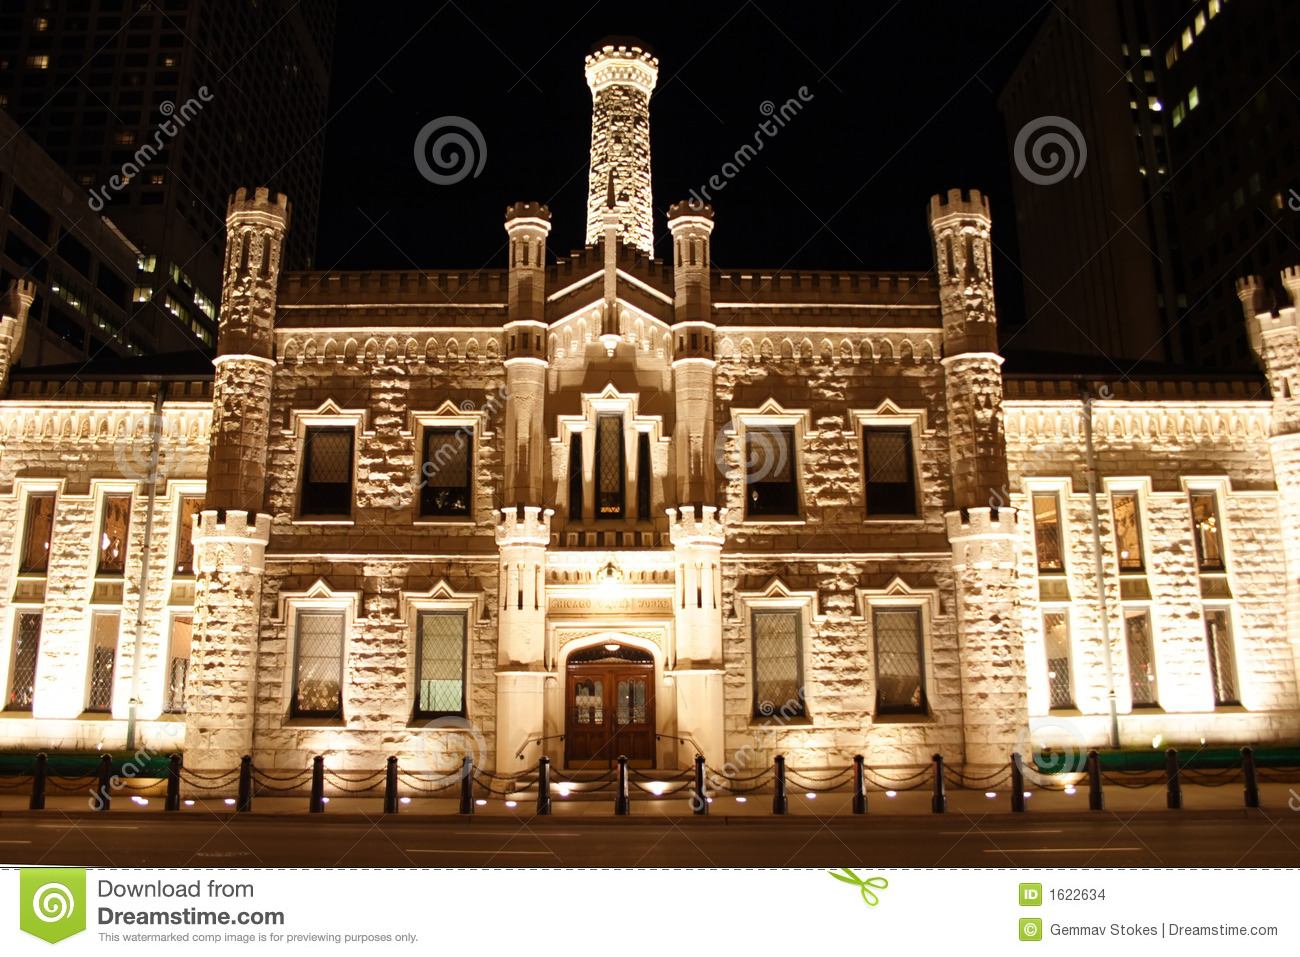 Chicago pumping station